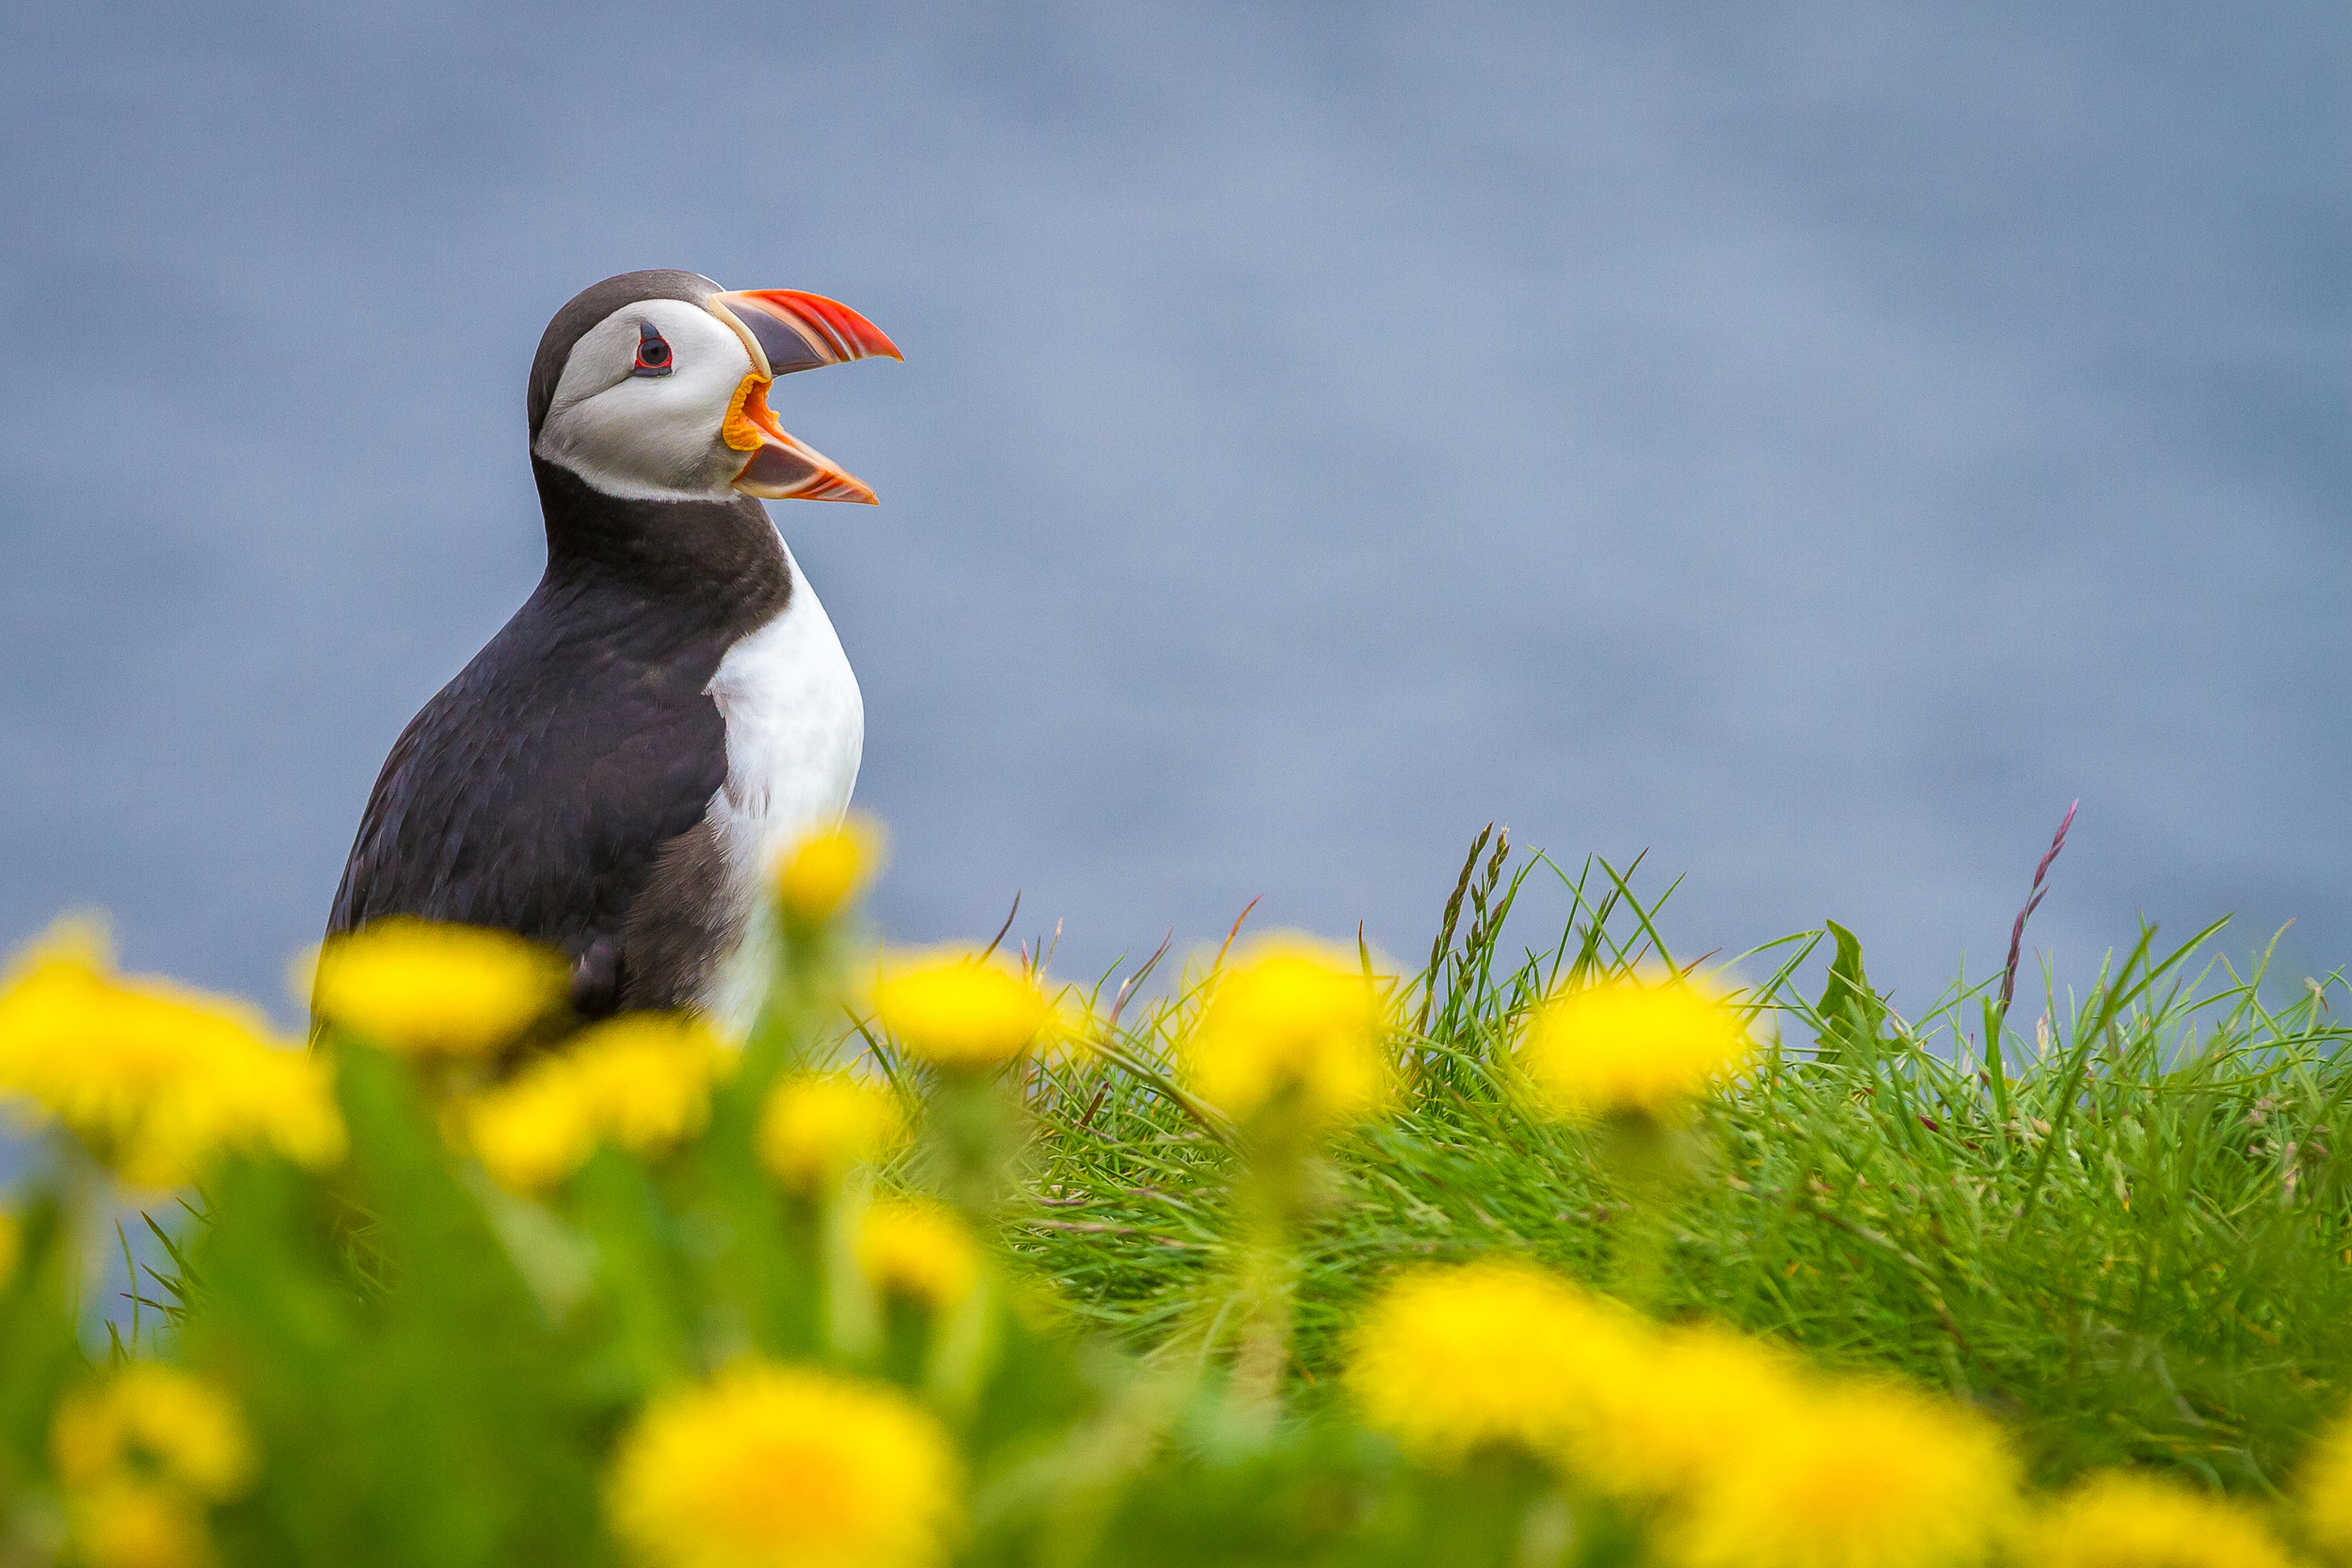 Iceland_20140606-10_South to Puffins-119.jpg